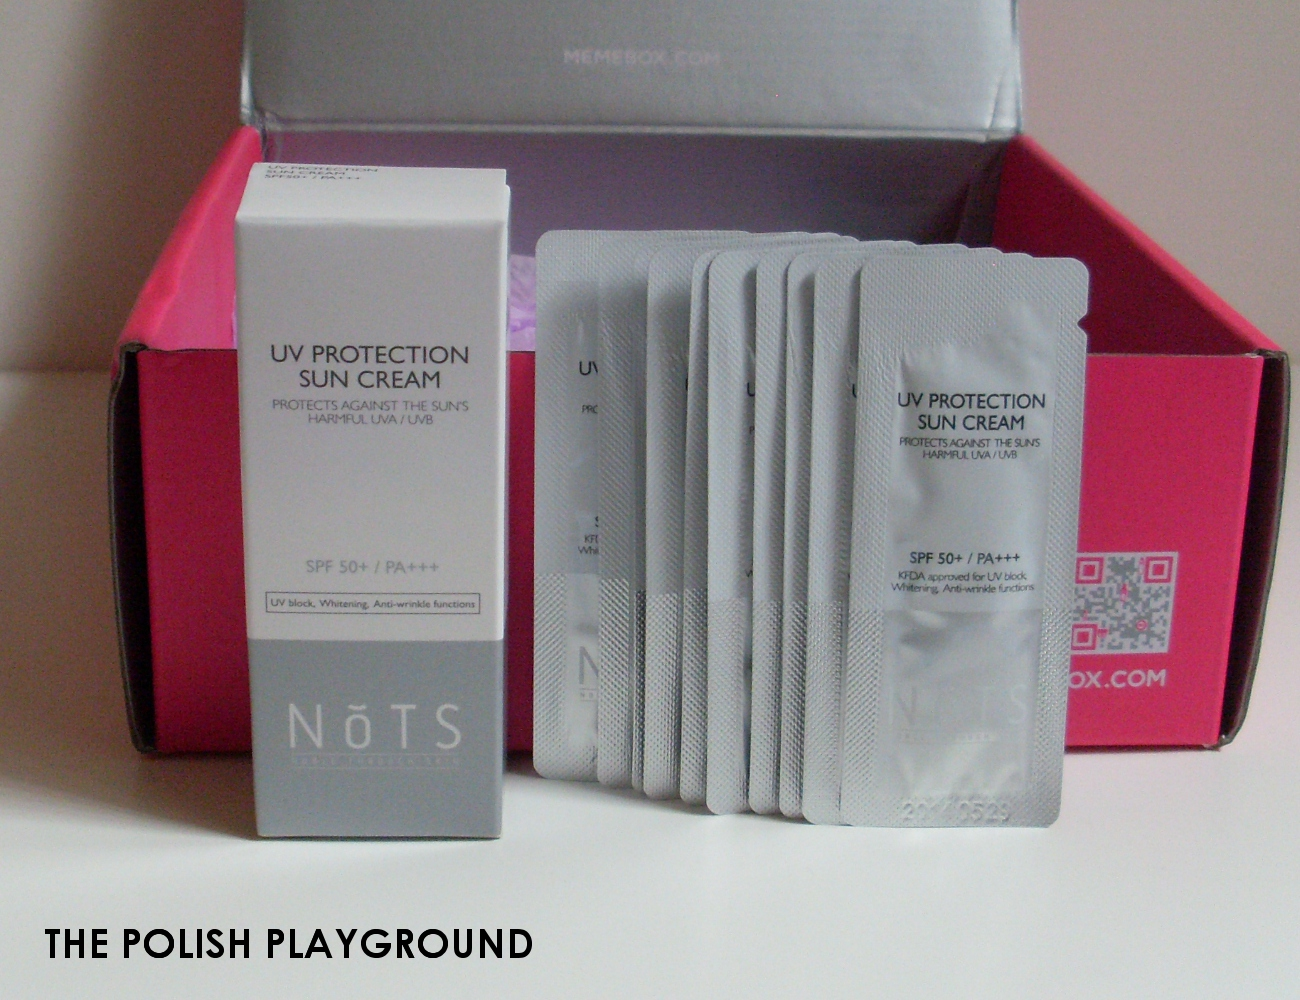 Memebox Special #25 Traveler's Beauty Kit Unboxing - NoTS UV Protection Sun Cream SPF50+ PA+++